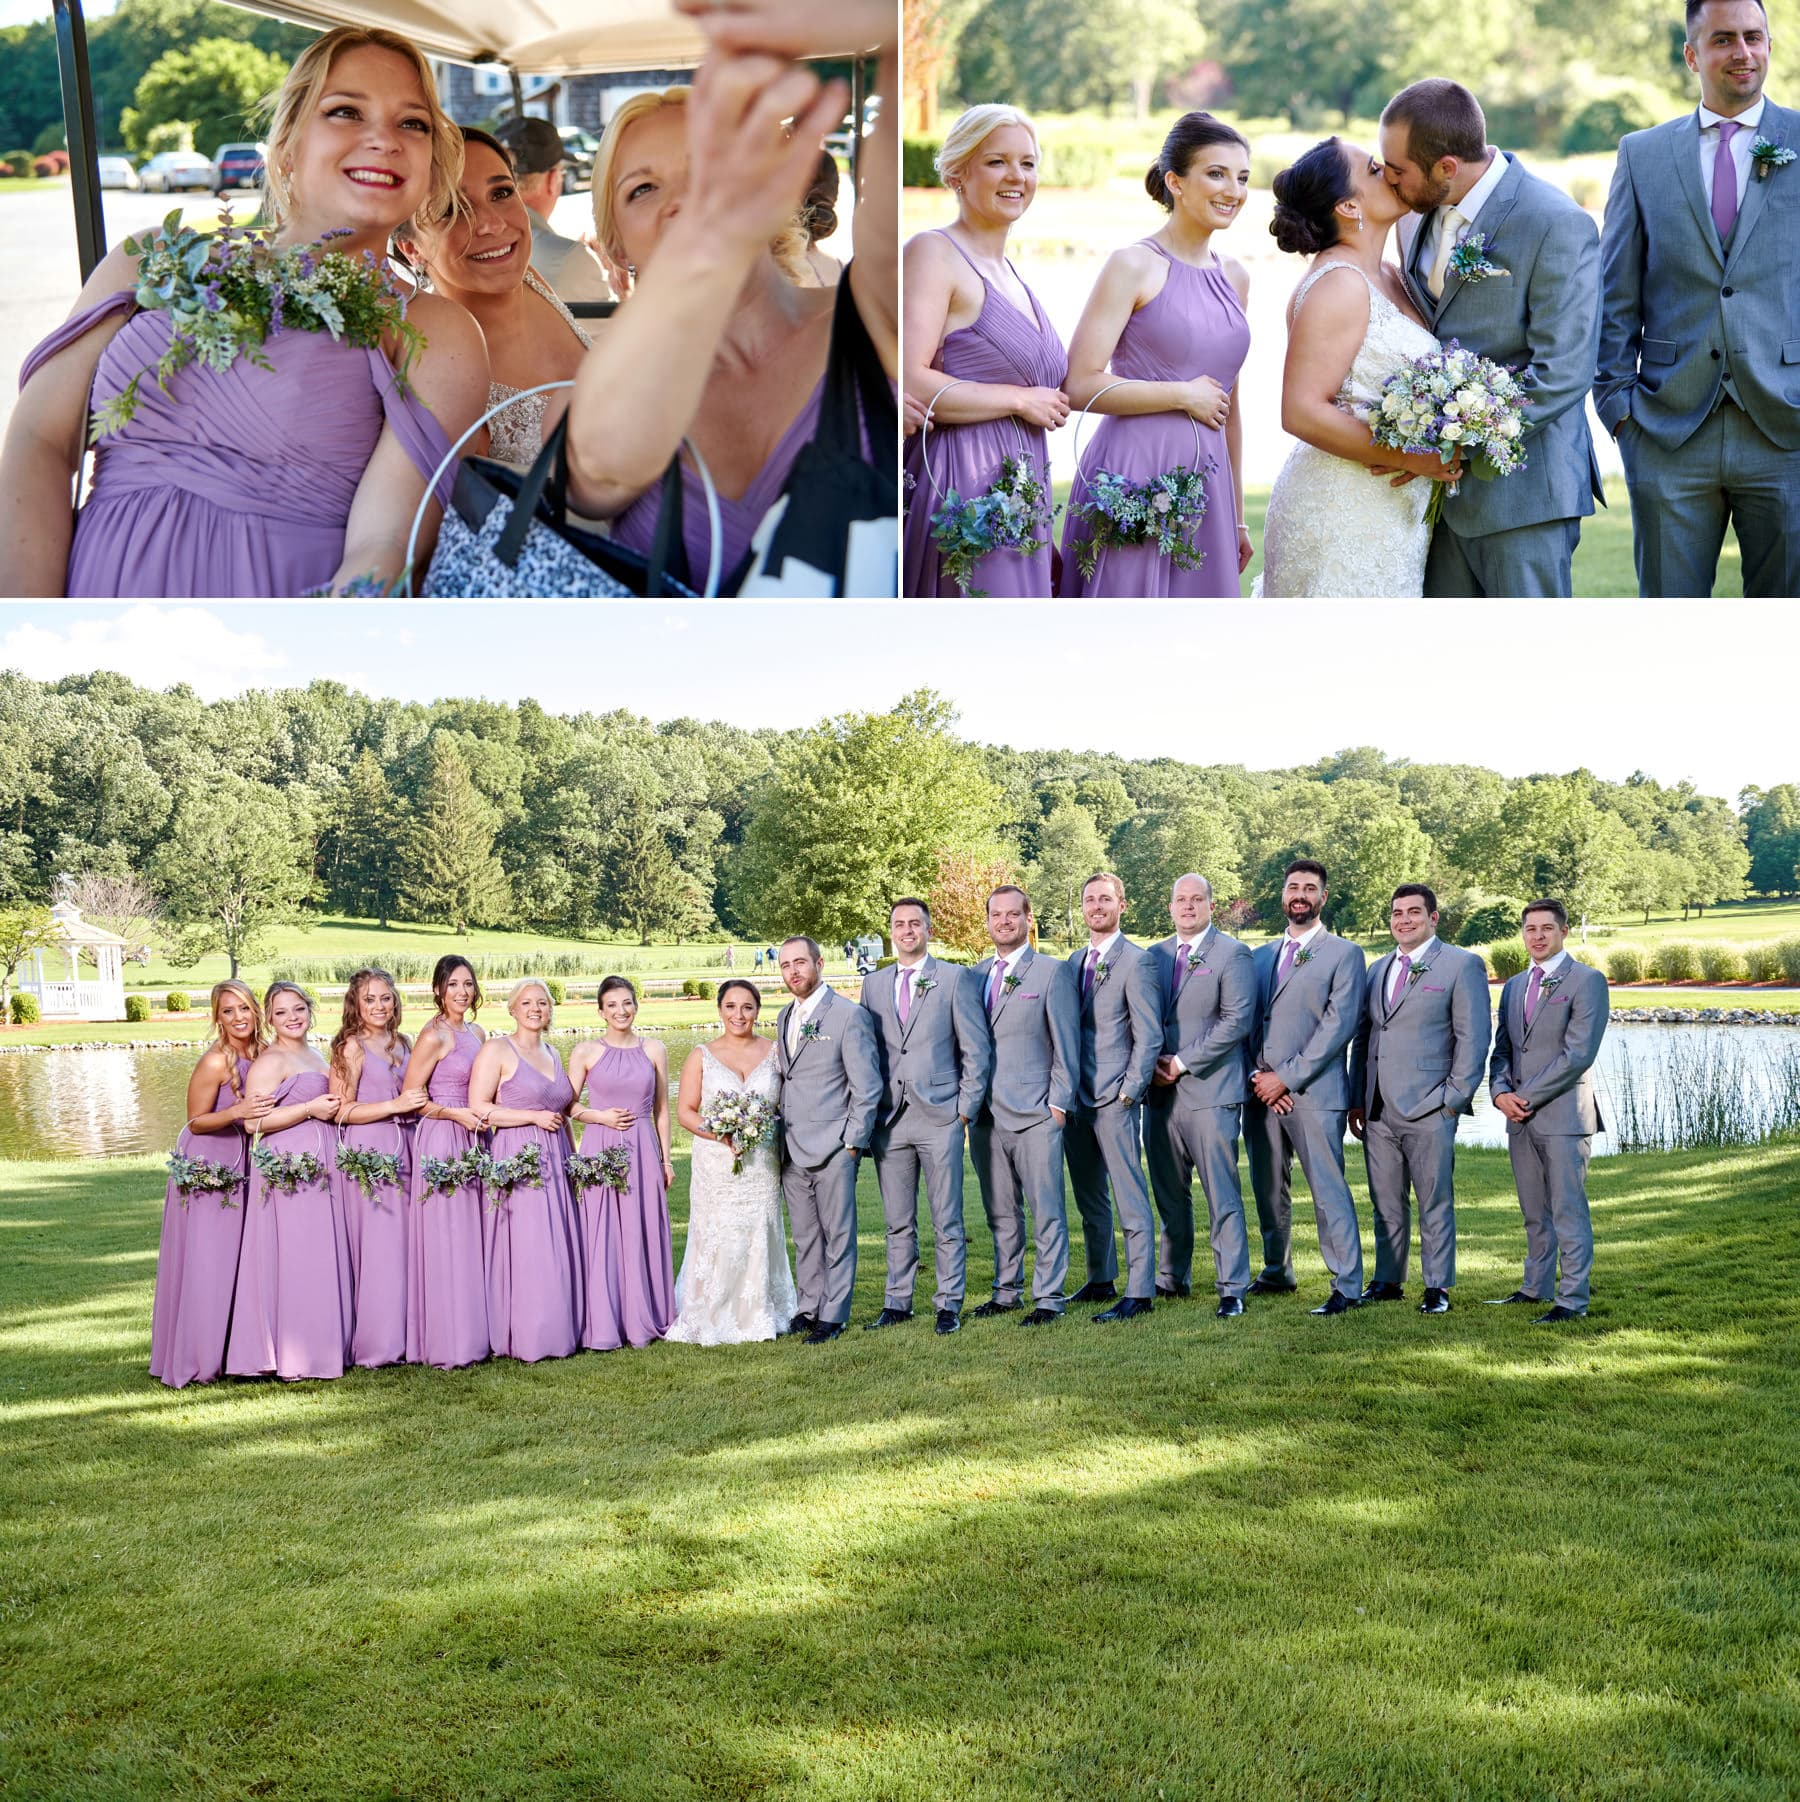 bridal party photos at farmstead golf club wedding